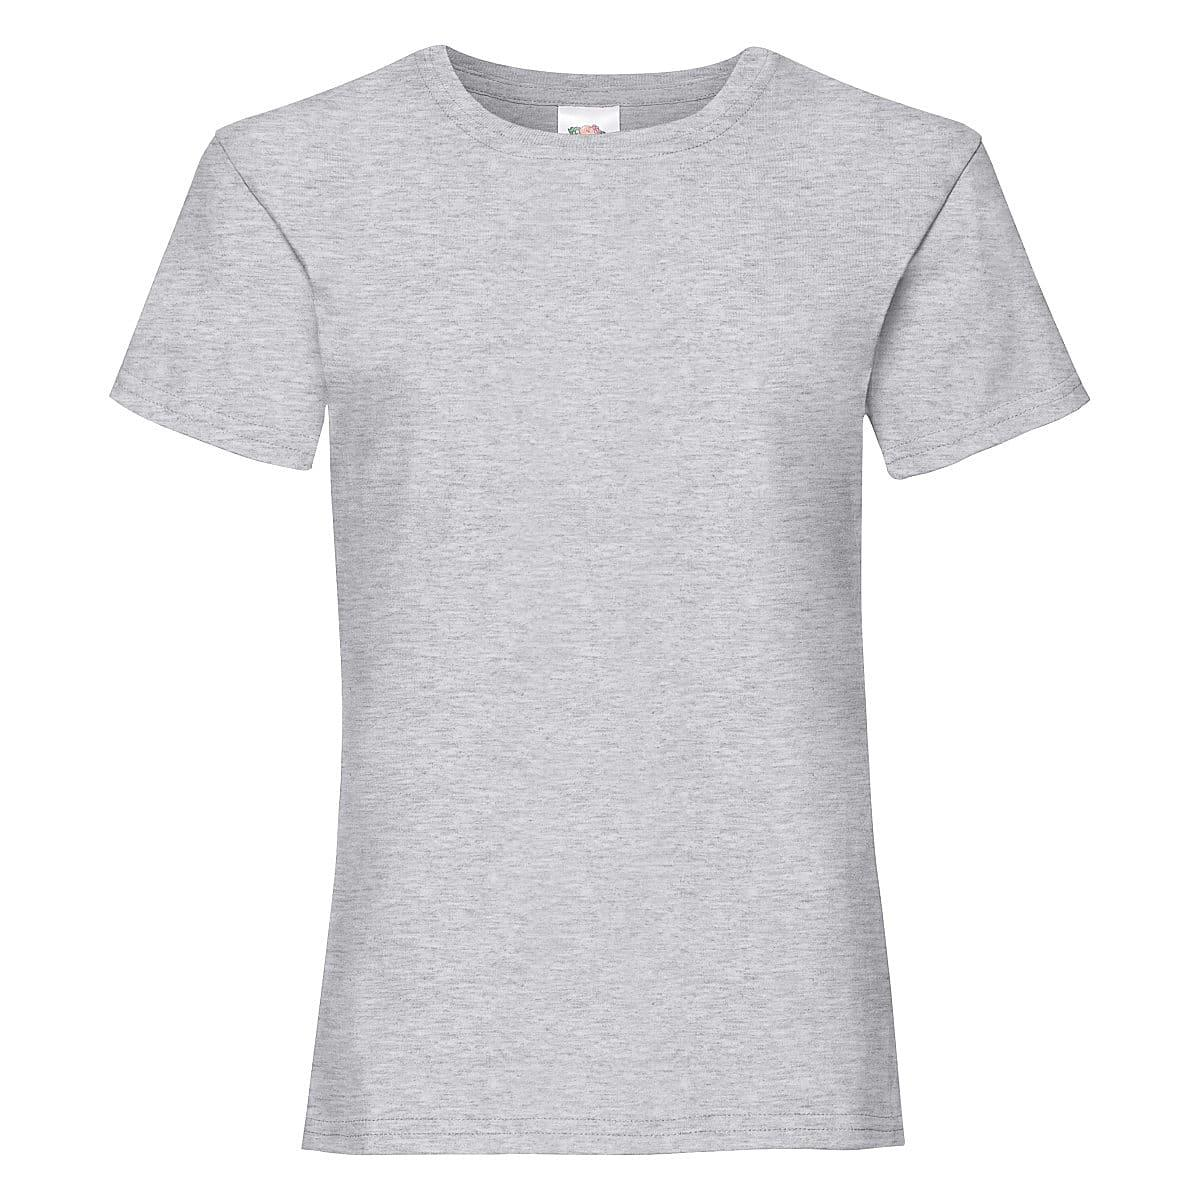 Fruit Of The Loom Girls Valueweight T-Shirt in Heather Grey (Product Code: 61005)